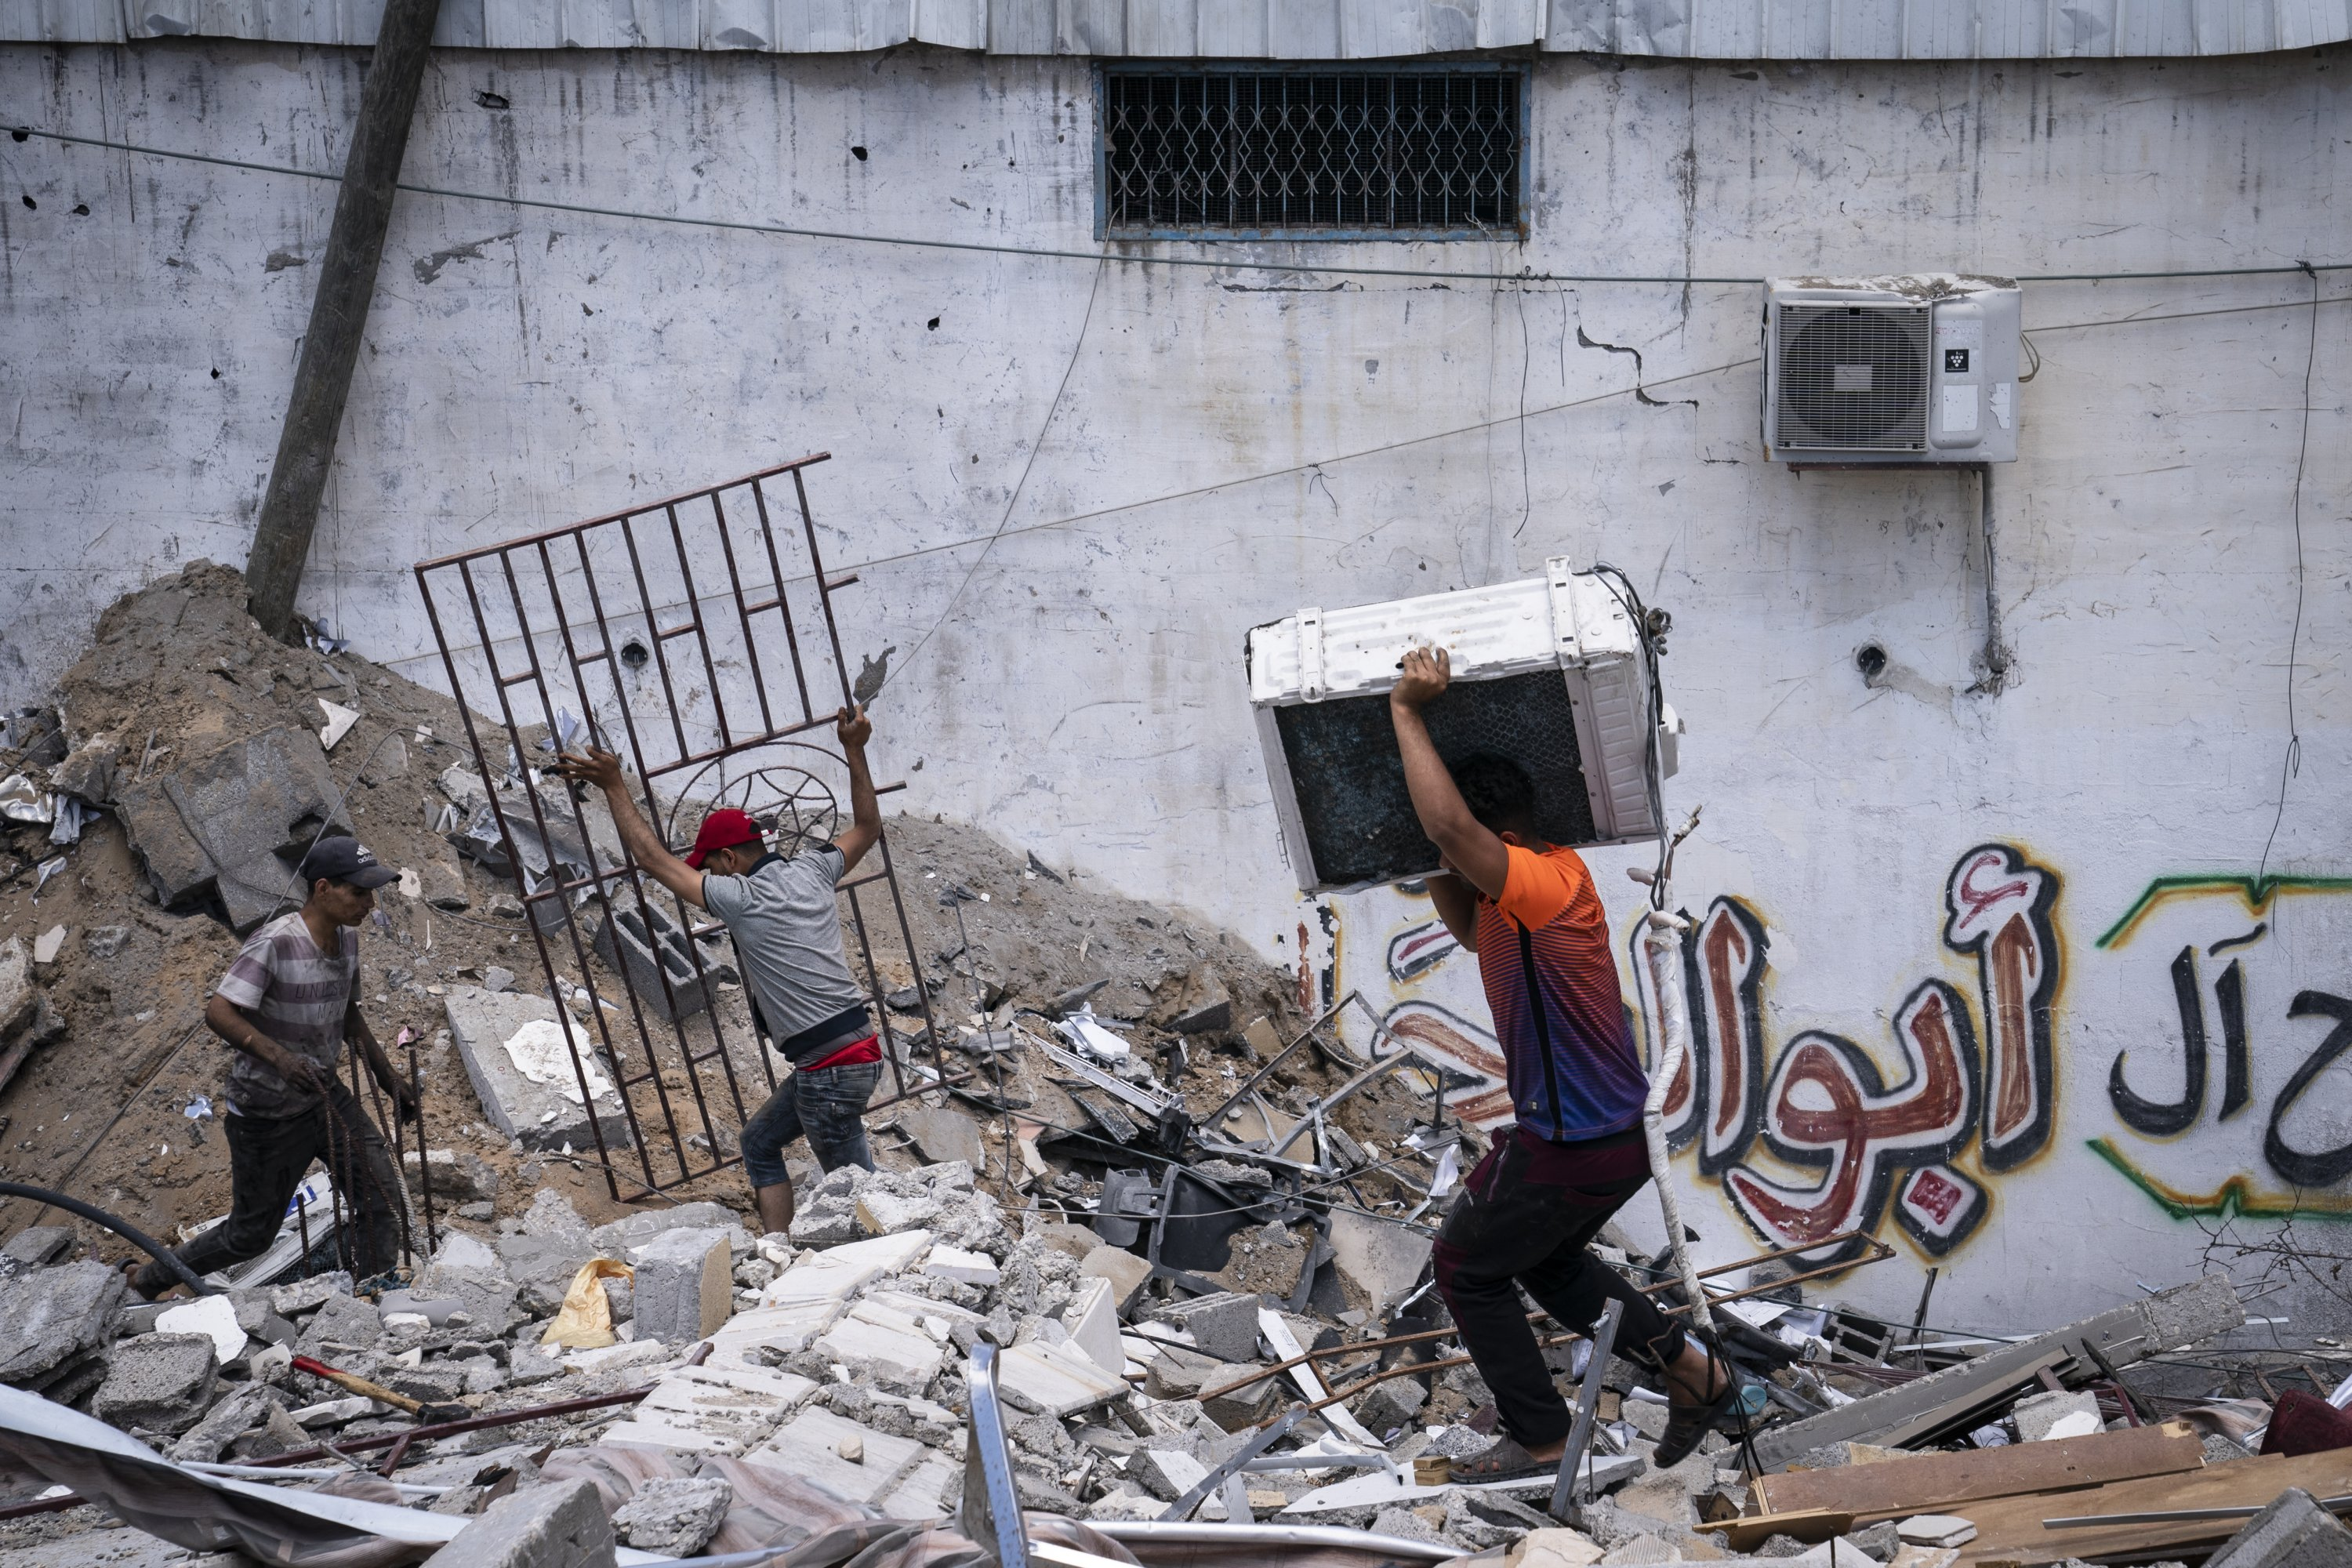 People reclaim valuable materials from a pile of debris of a building destroyed by an Israeli airstrike, in Gaza City, Palestine, May 22, 2021. (AP Photo)